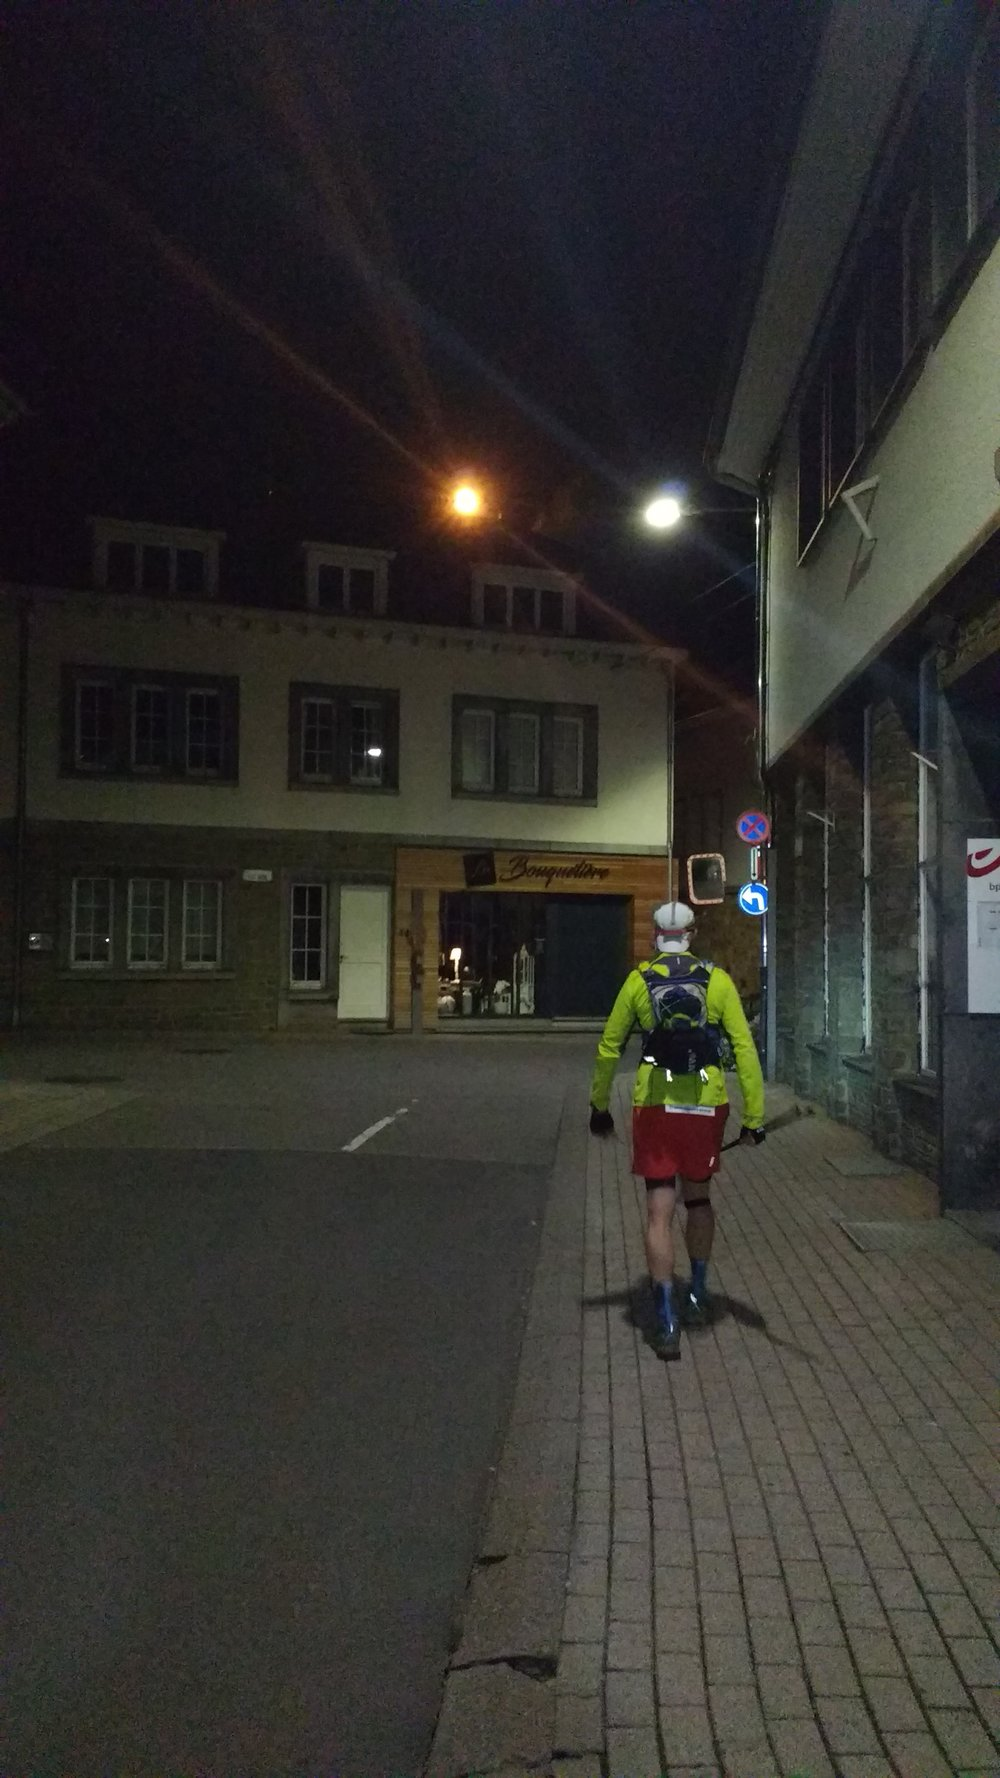 Sighteeing in Houffalize with Ingo after 125k